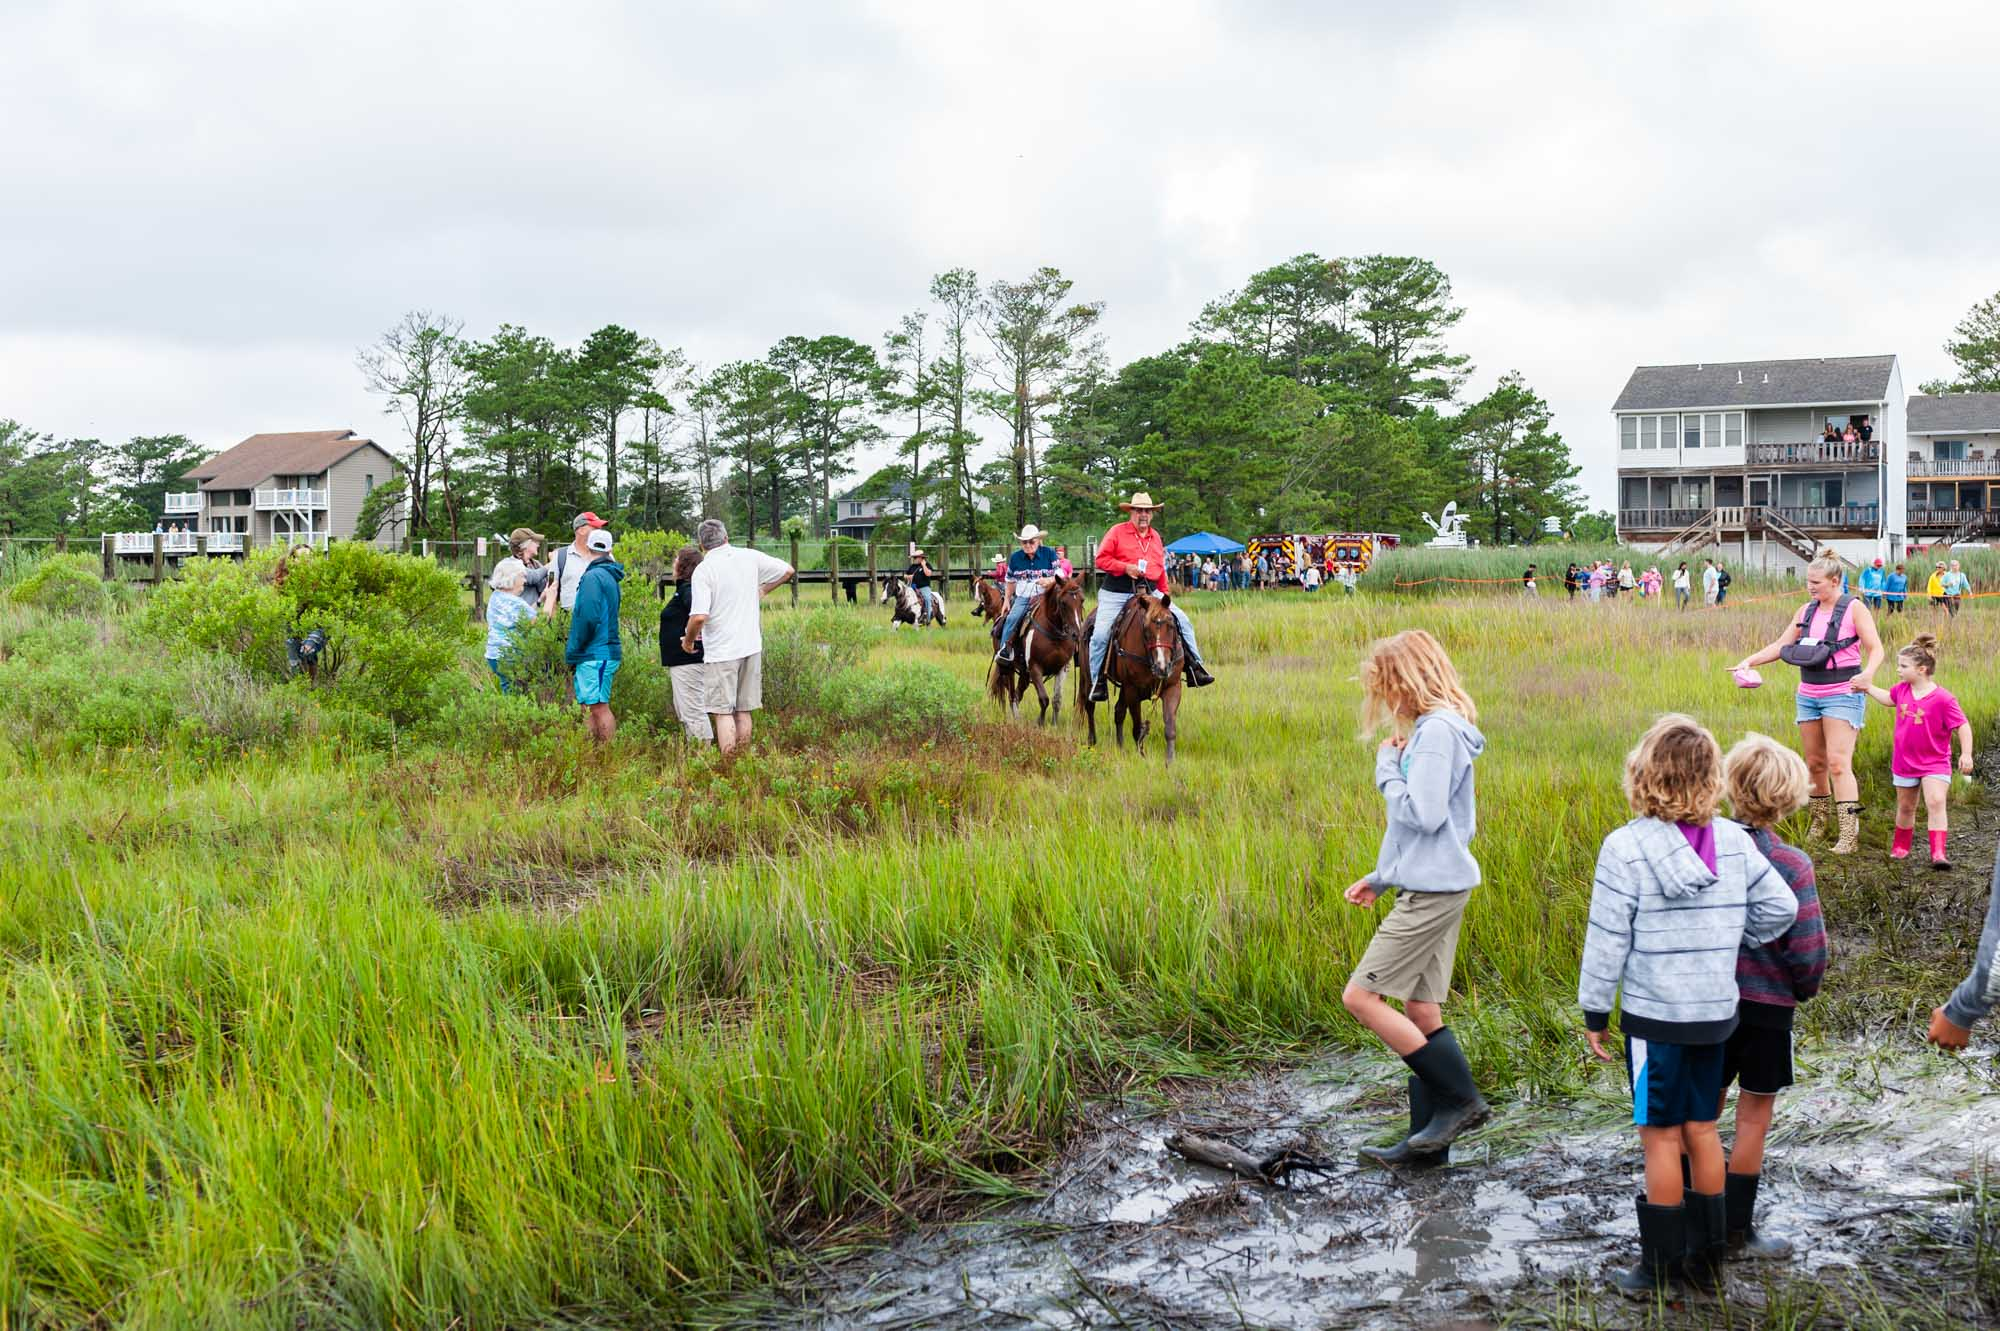 EmilyLewisCreative_20190724_Chincoteague Pony Swim-4.jpg